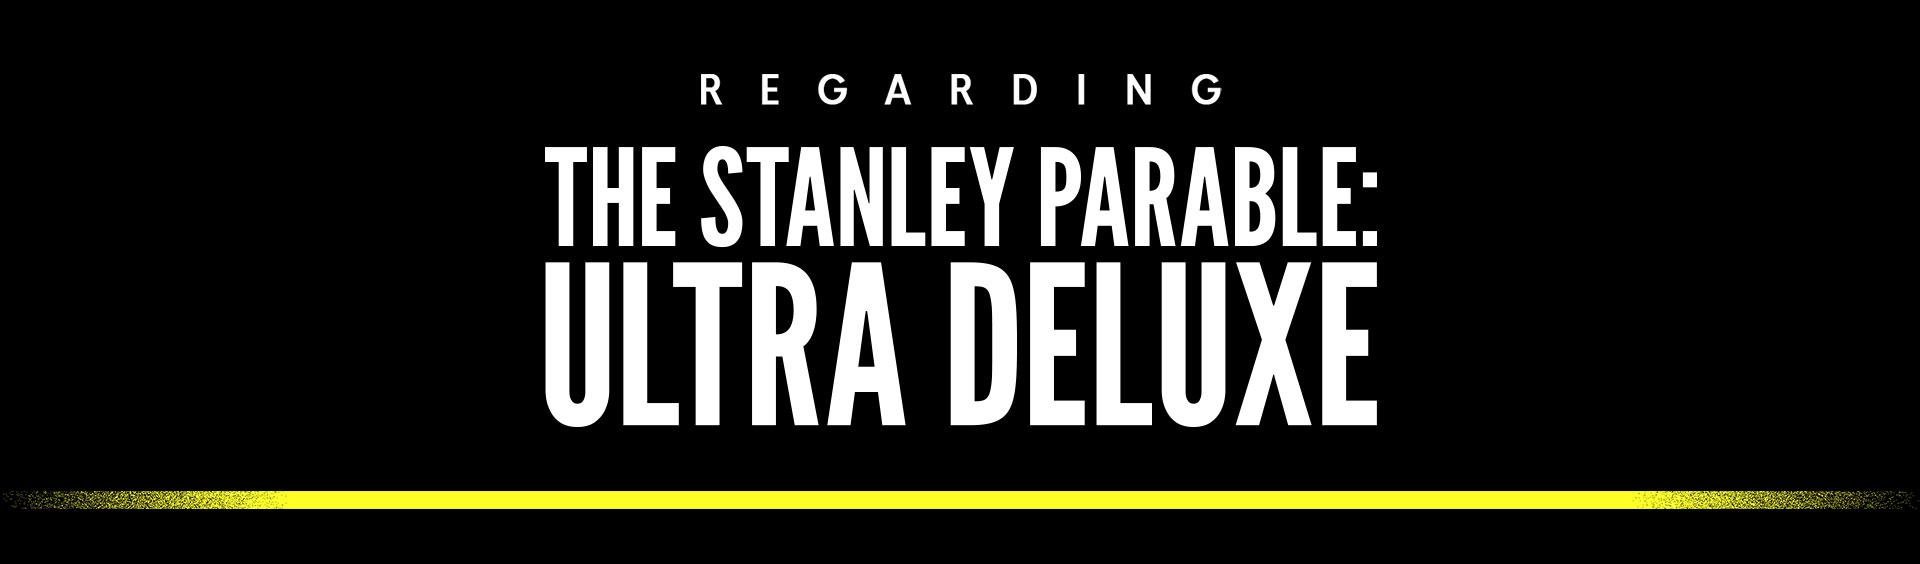 Regarding The Stanley Parable: Ultra Deluxe